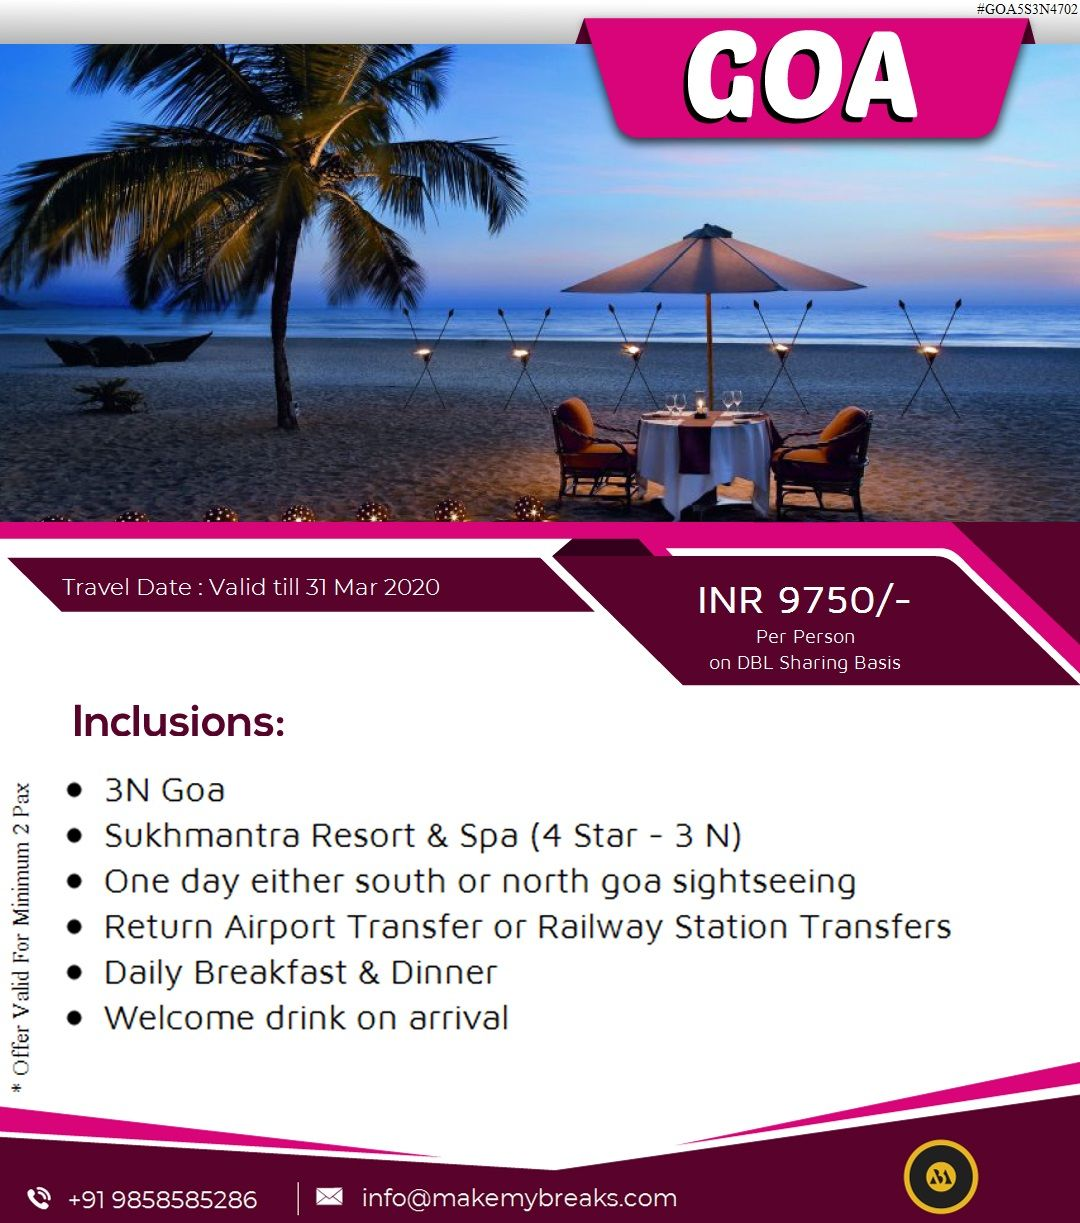 Customize Goa tour package & get exclusive deals on Goa travel packages by booking with us... #MakeMyBreaks #Goa #Travel #TravelPackages #Tour #TraveltoGoa